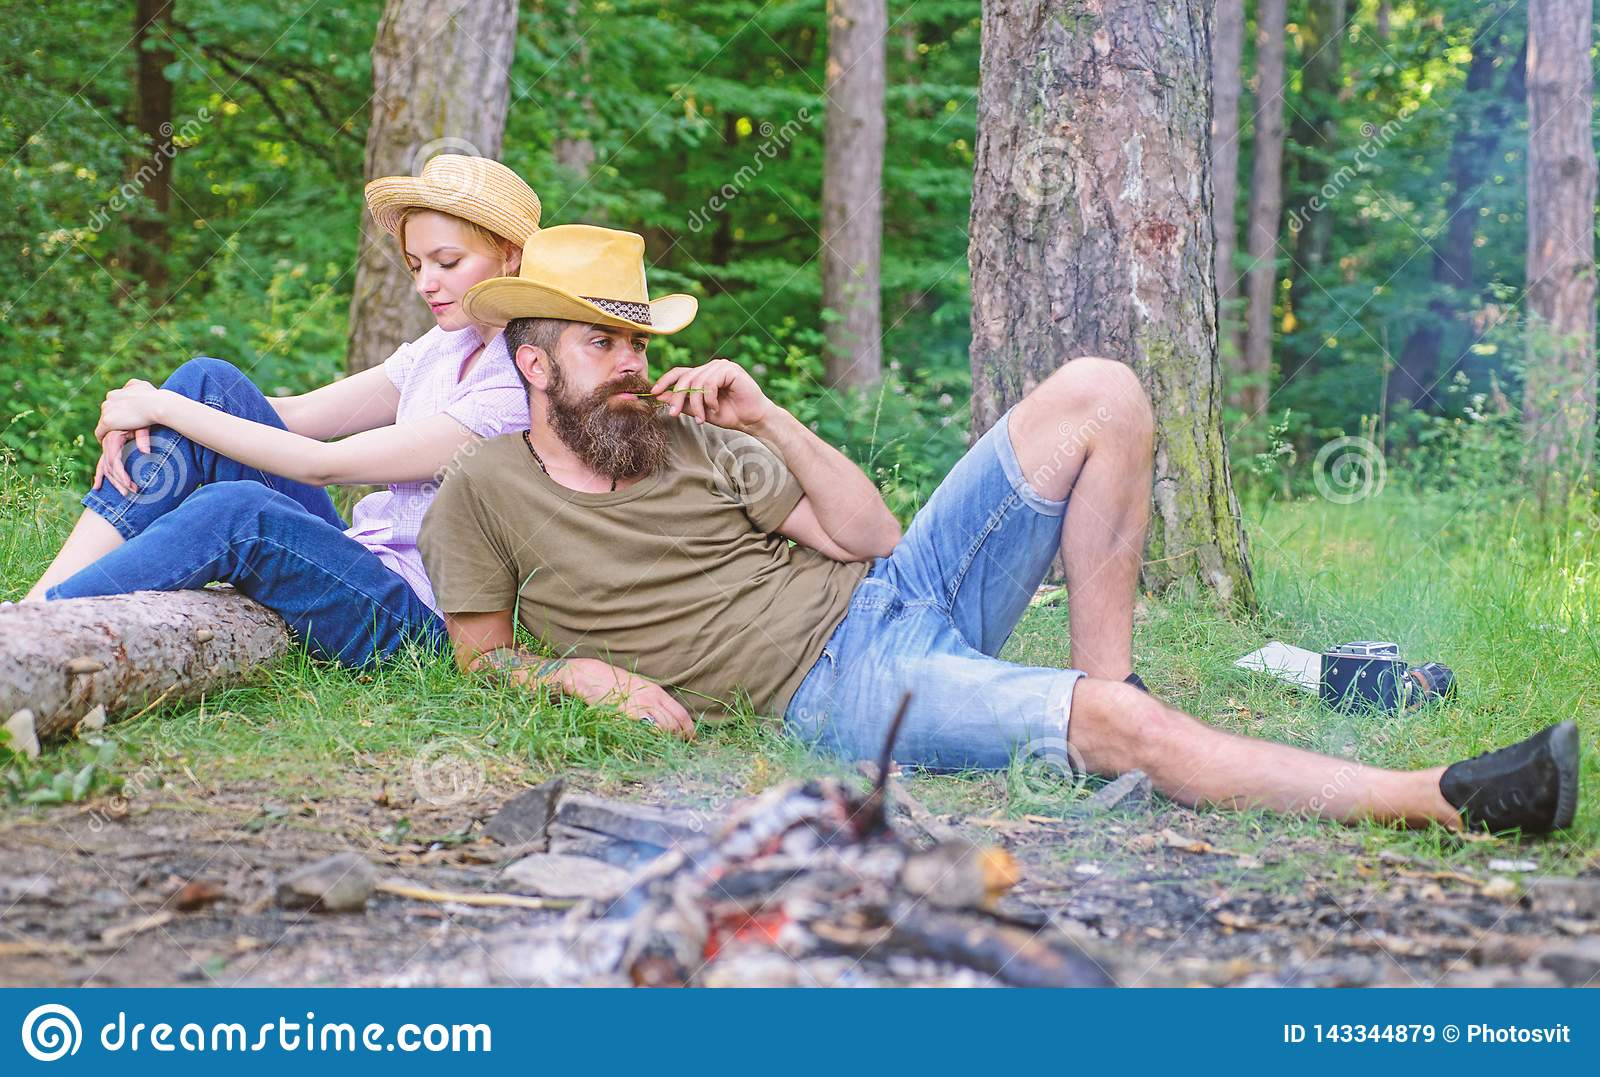 Family traditions. Family activity for summer vacation in forest and nature. Couple relaxing after gathering mushrooms